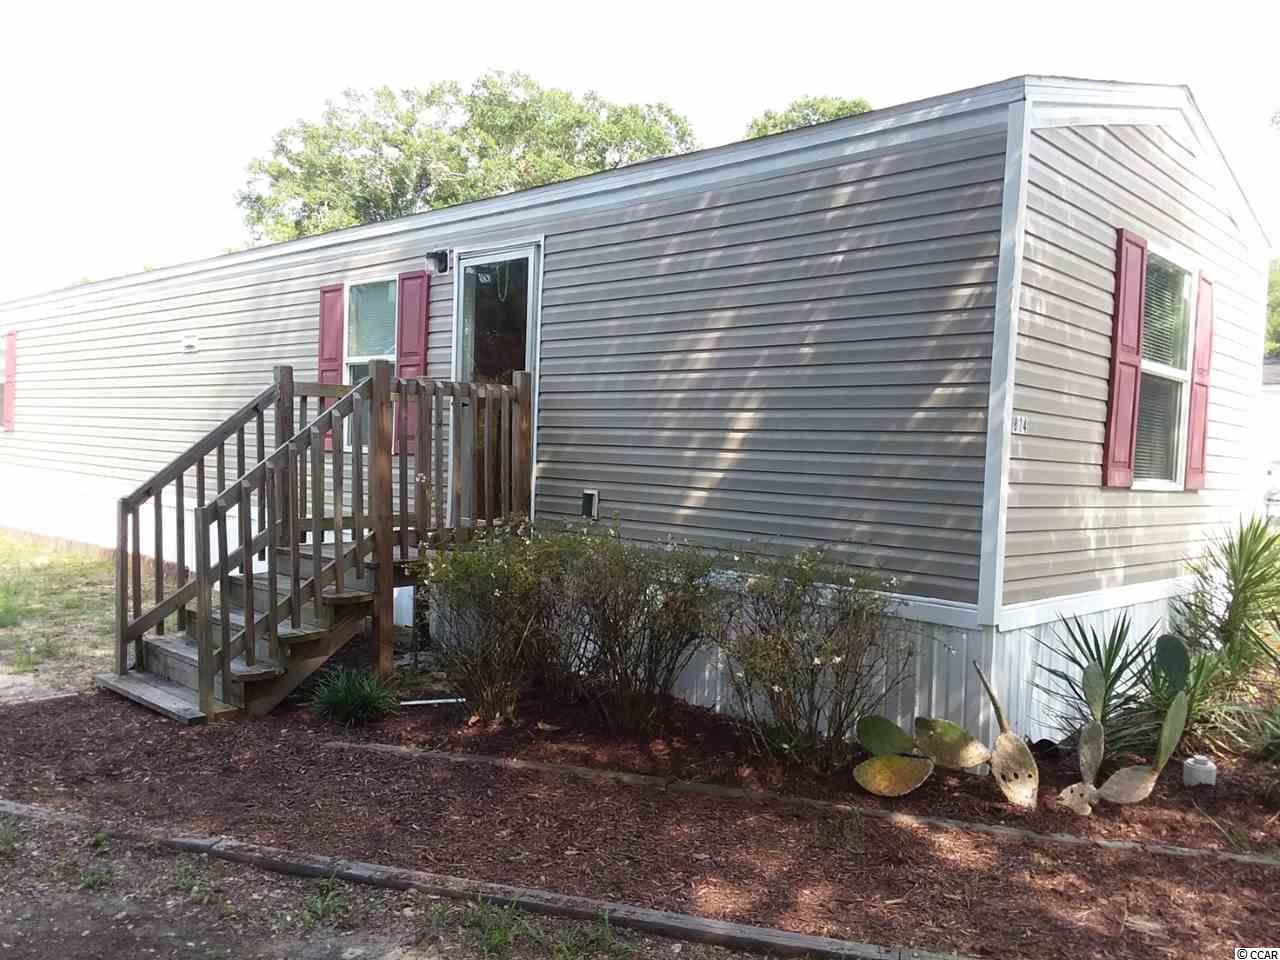 Perfect location for a beach retreat.  This two bedroom one bath home is east of Hwy 17 and a short golf cart ride to the ocean.  The mobile home is only 4 years old and comes with deeded land.  There is no HOA.  Storage building on the property conveys.